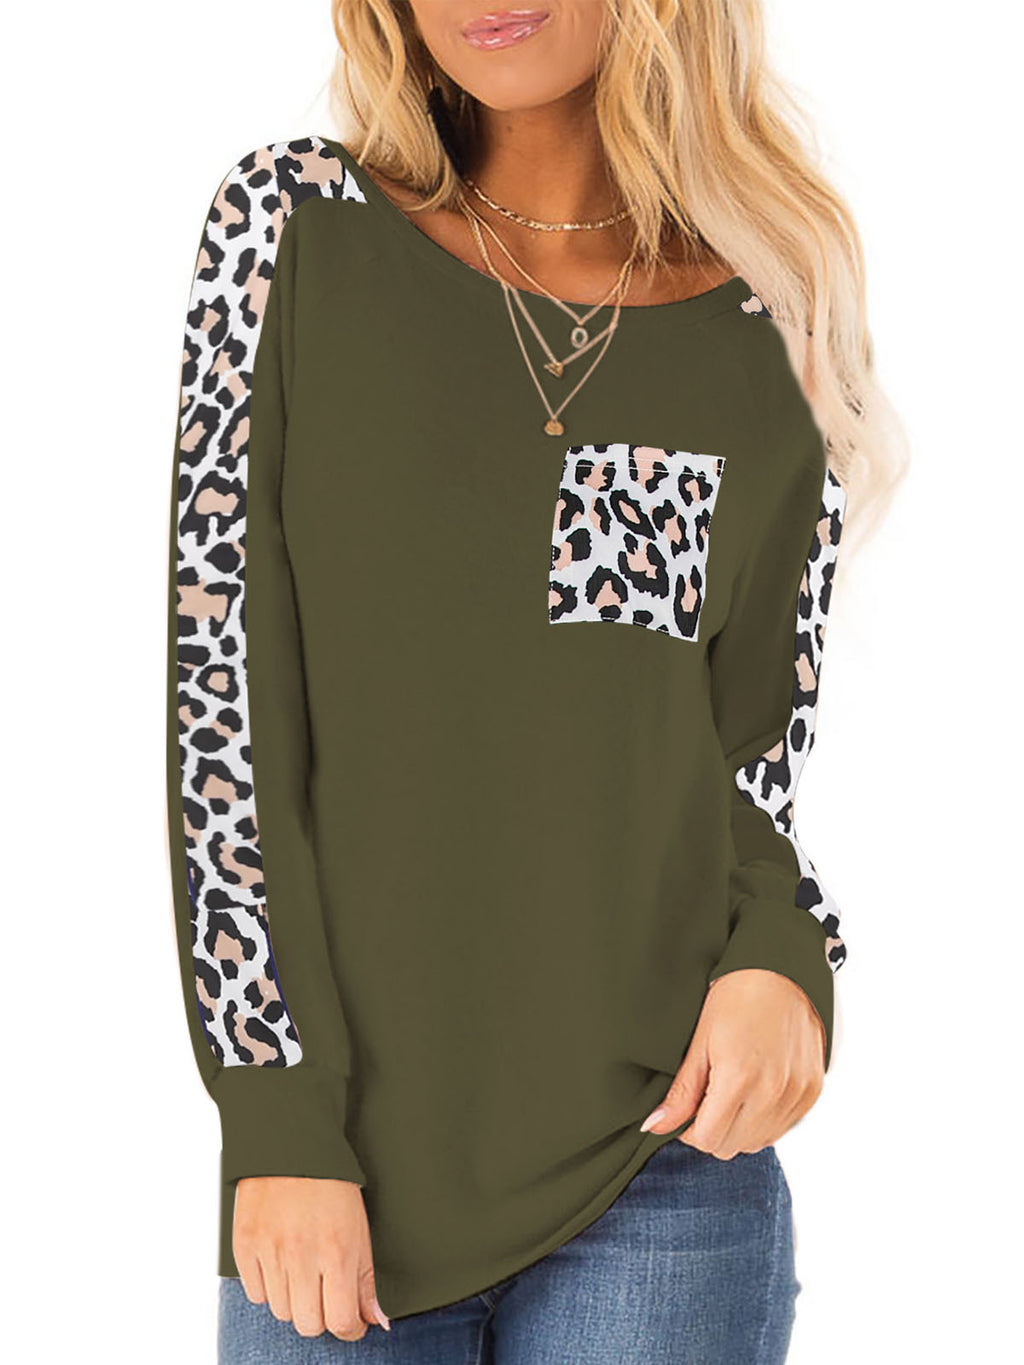 Leopard Printed Long Sleeve Round Neck T Shirts - Luckinchic - LuckinChic.com